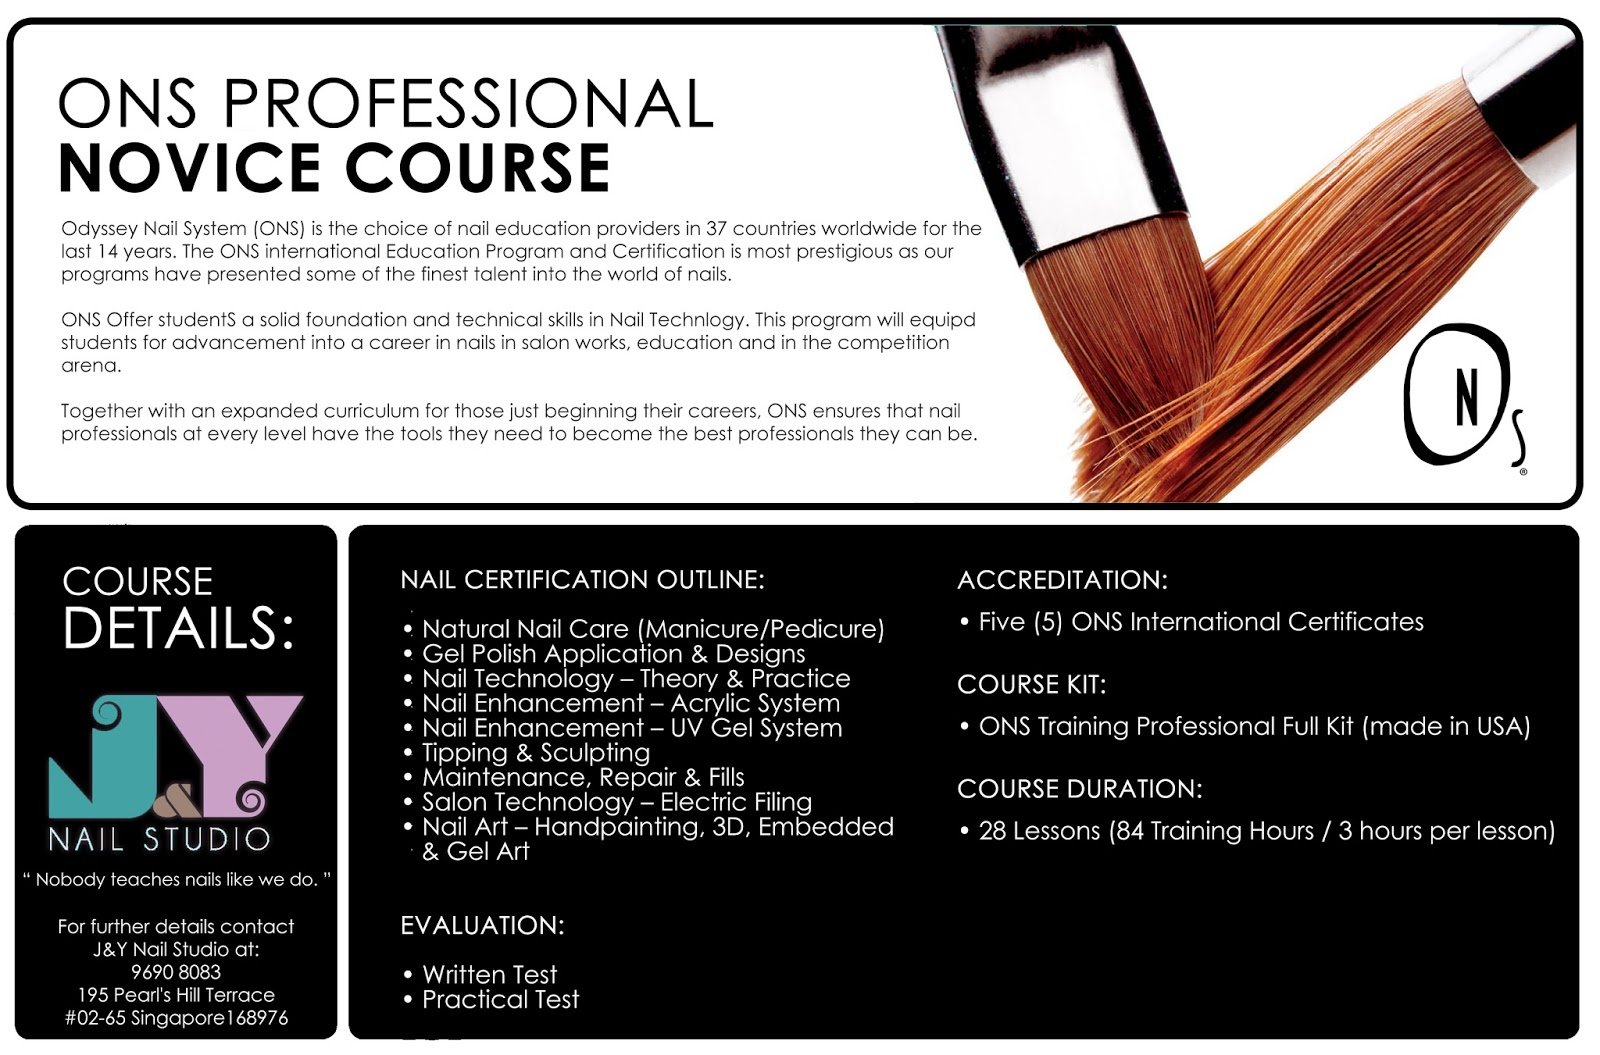 J Nail Studio Ons Professional Full Course For Novice